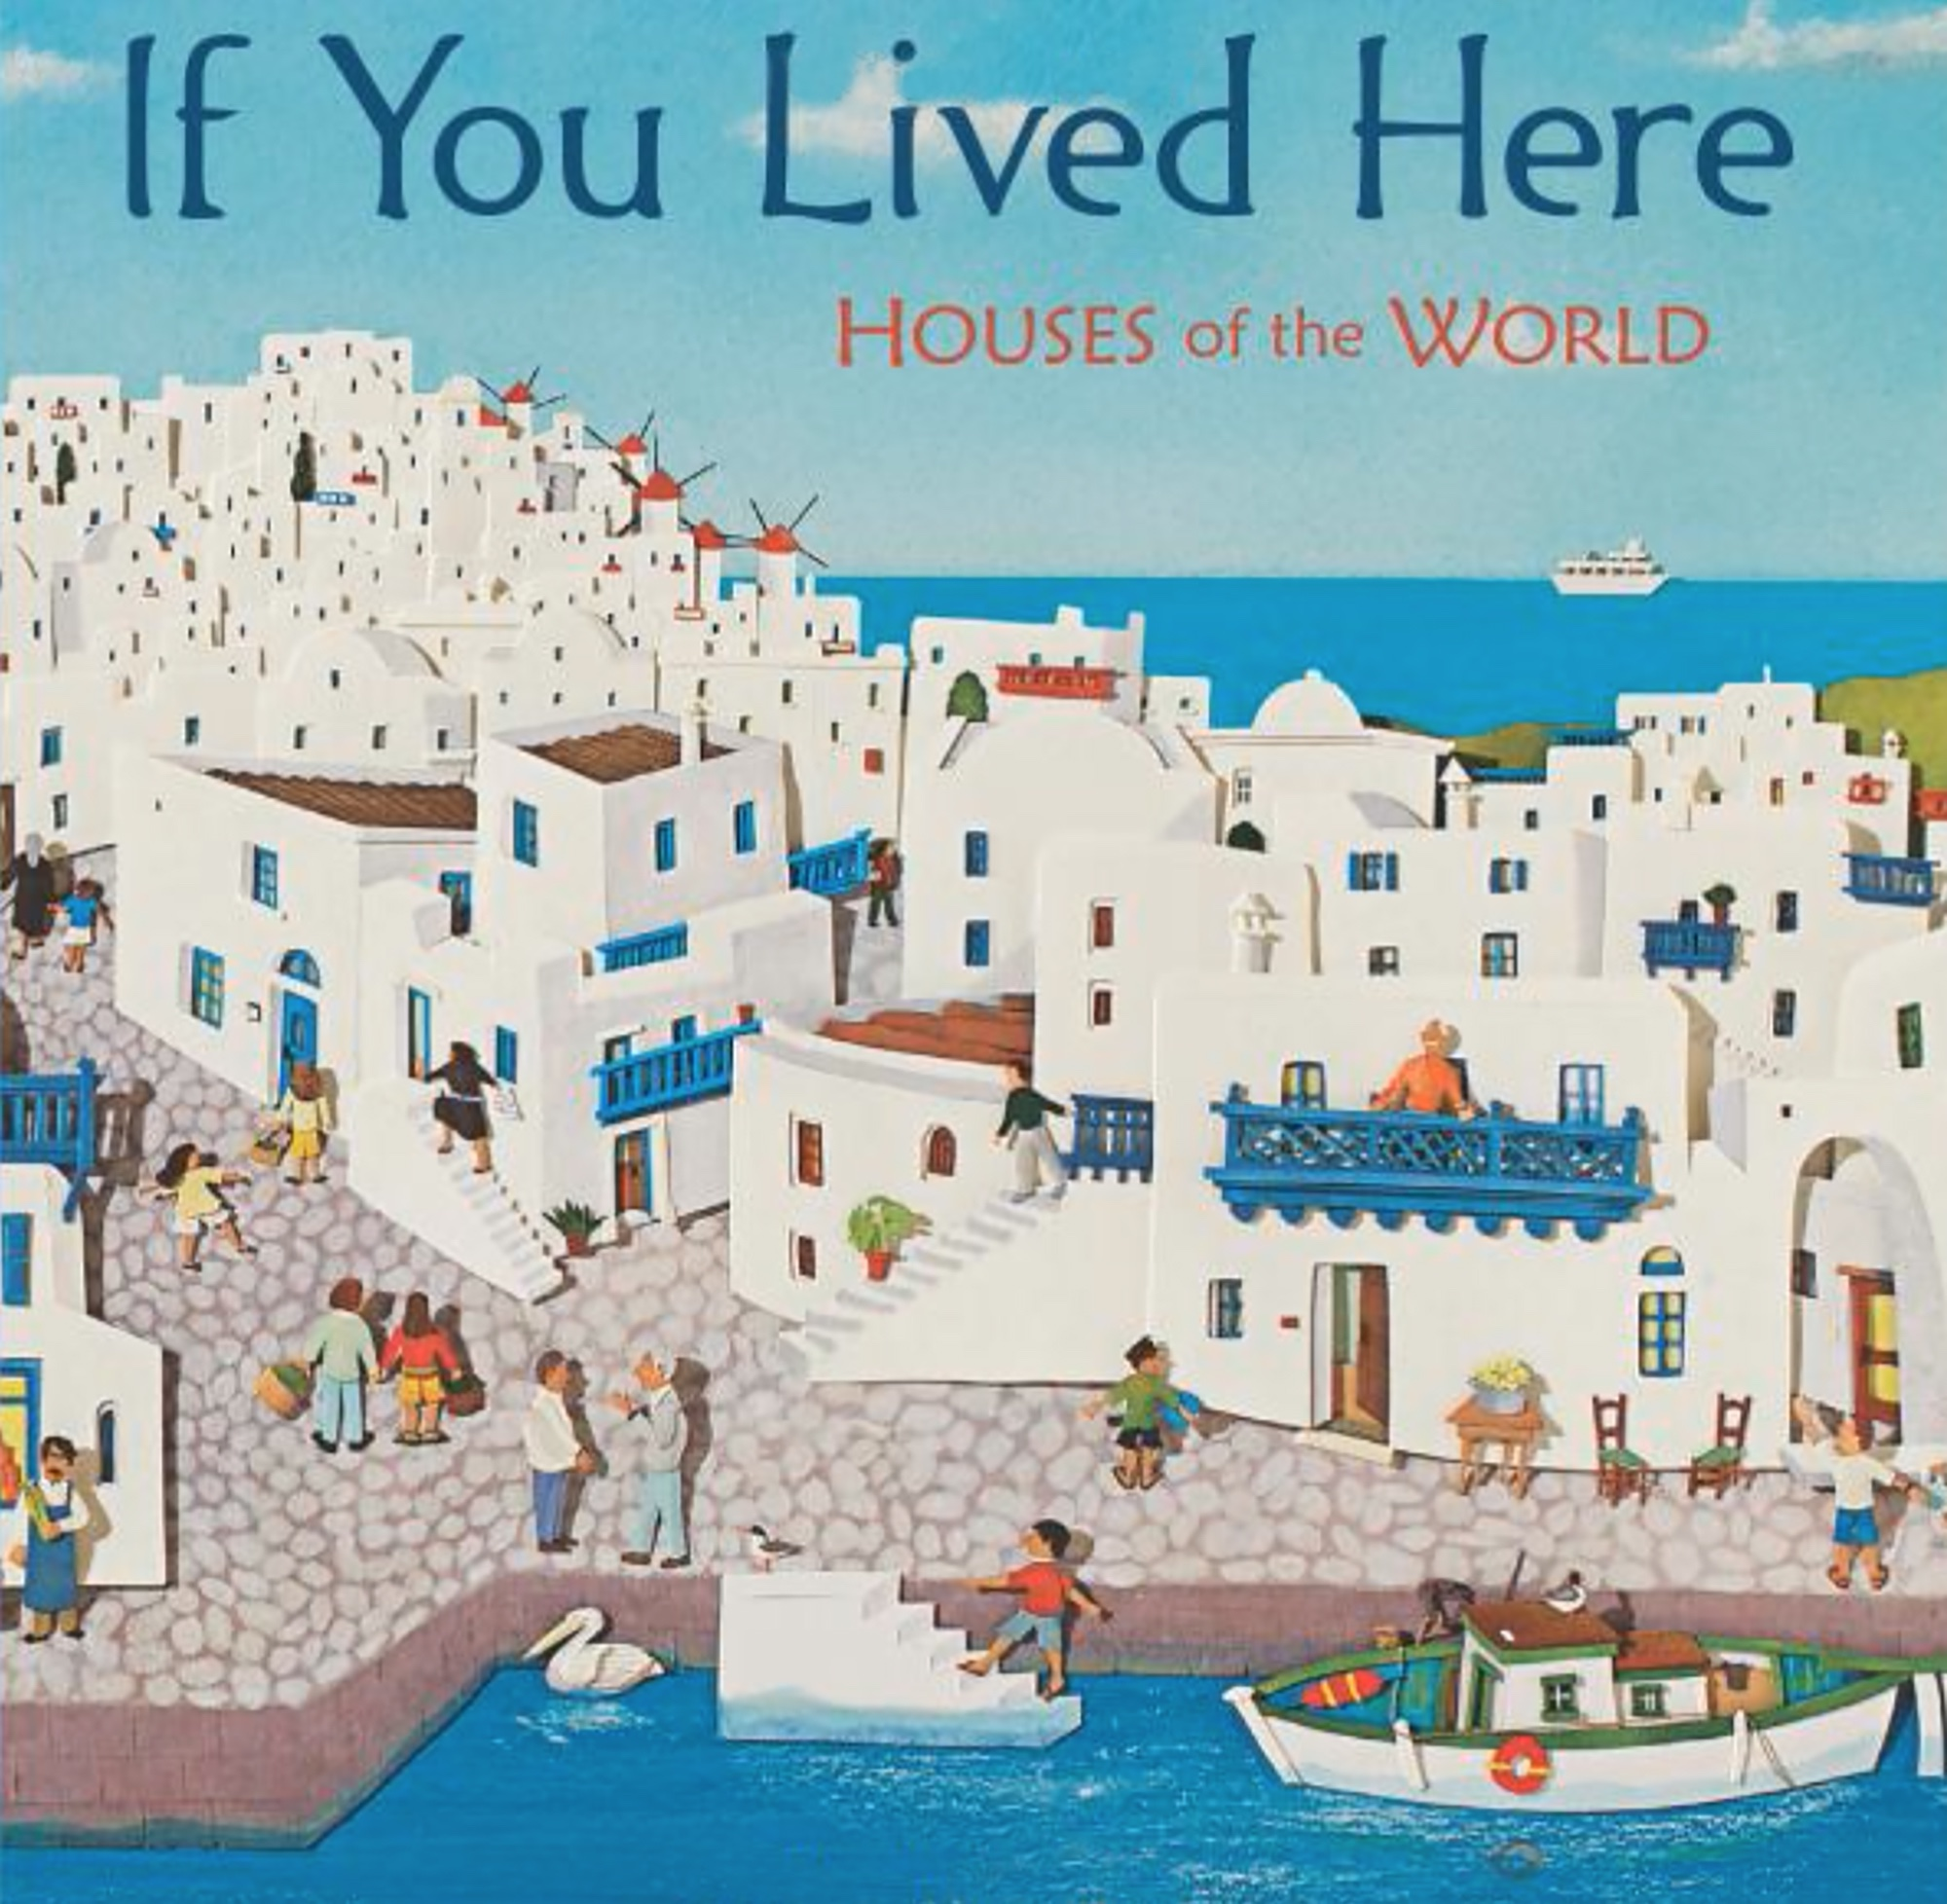 If_you_lived_here.jpg - 722.91 KB